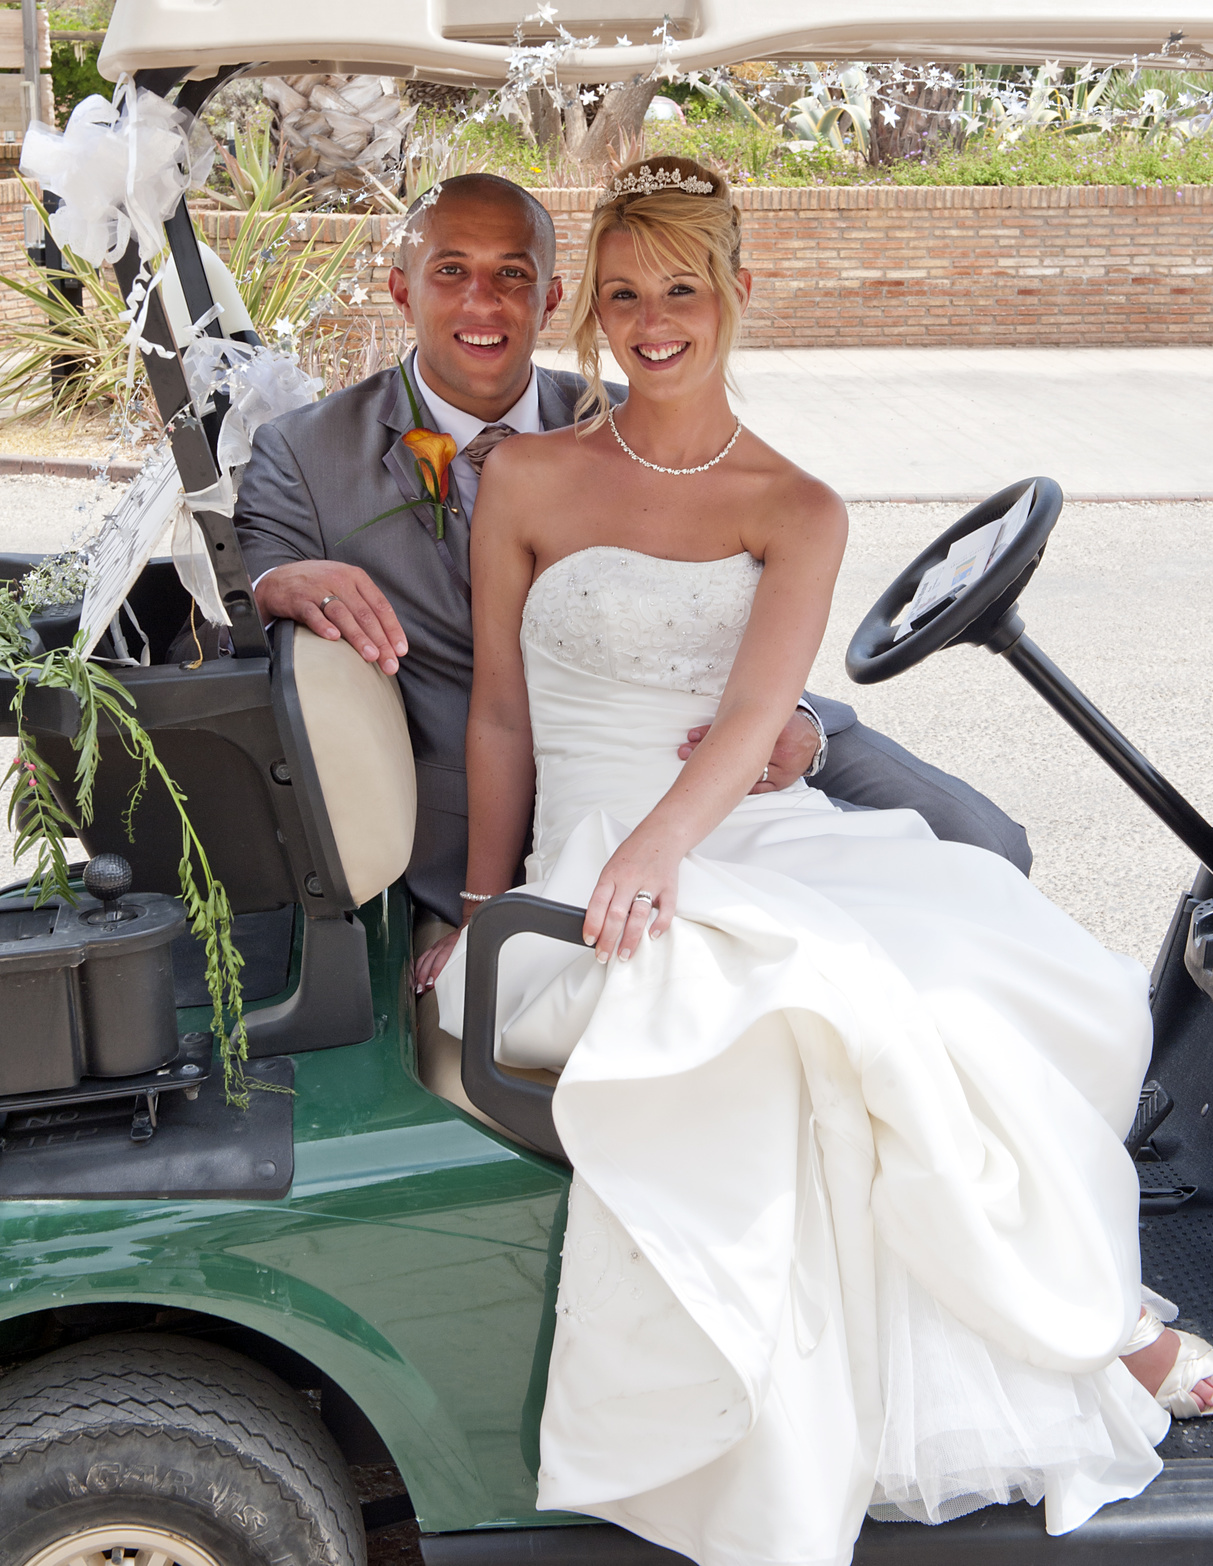 Golf Carts wedding planning